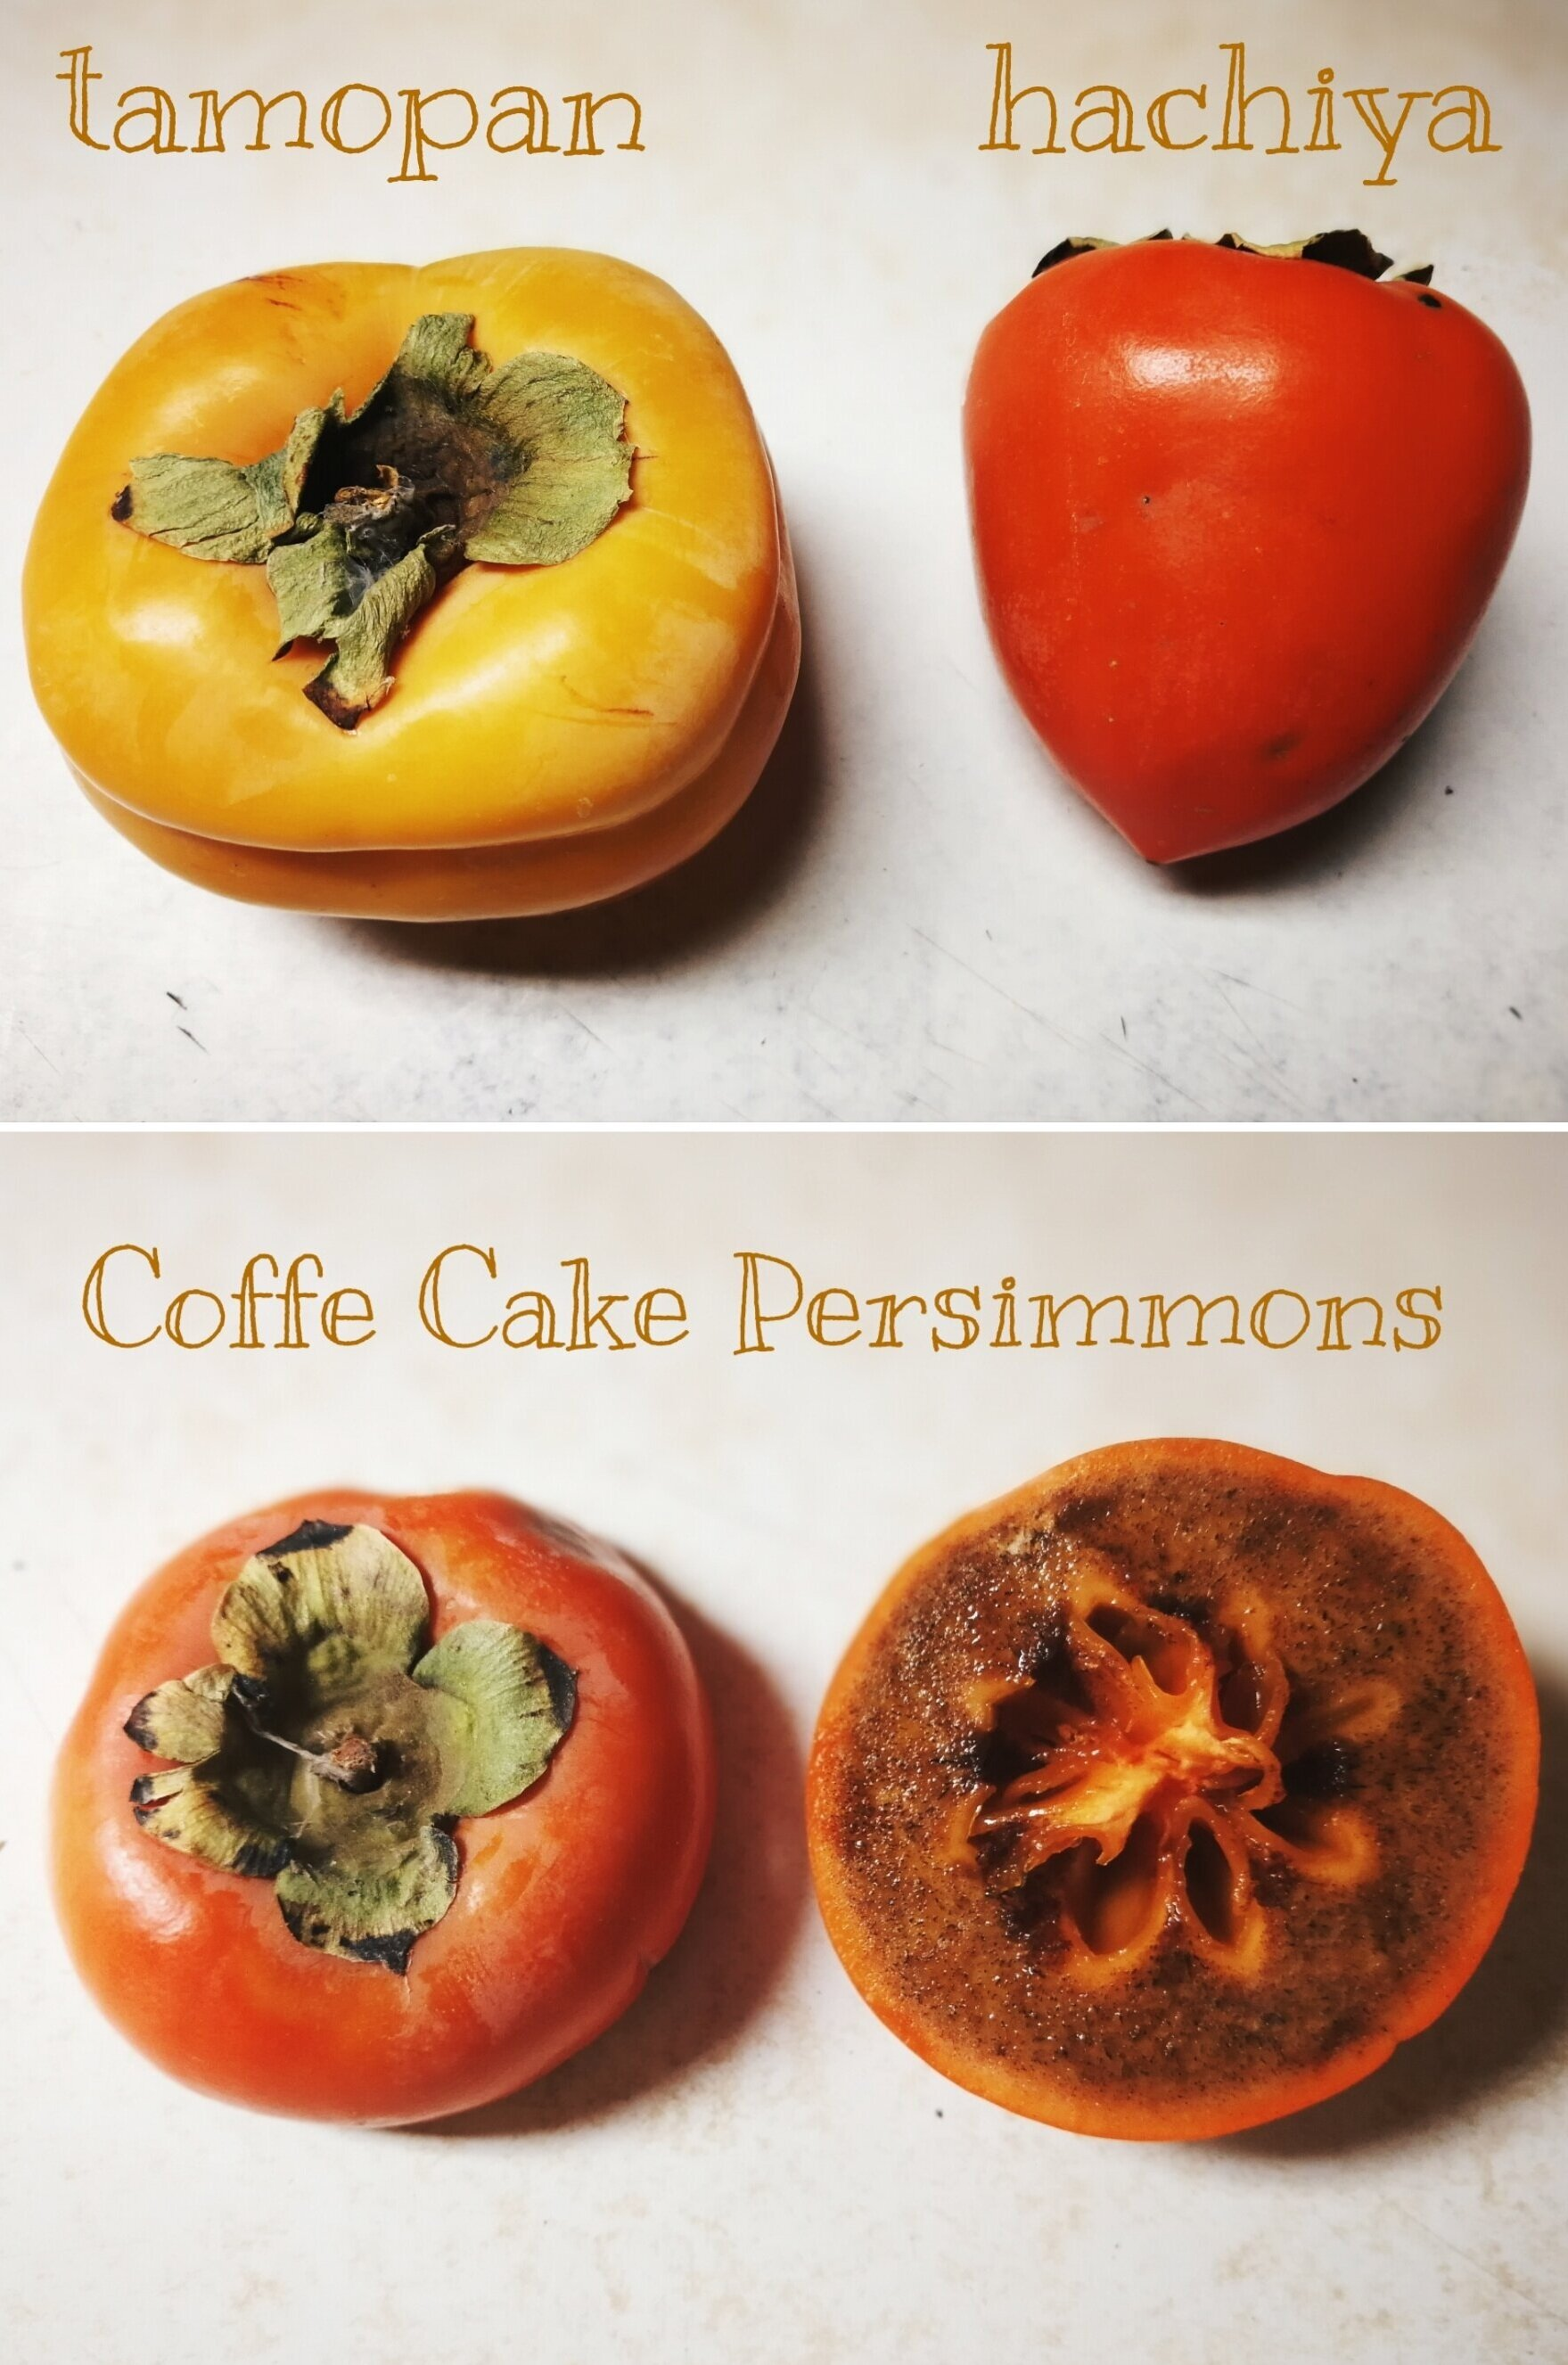 Tamopan and Coffee-Cake Persimmons - Specialty varieties only sold at select locations.